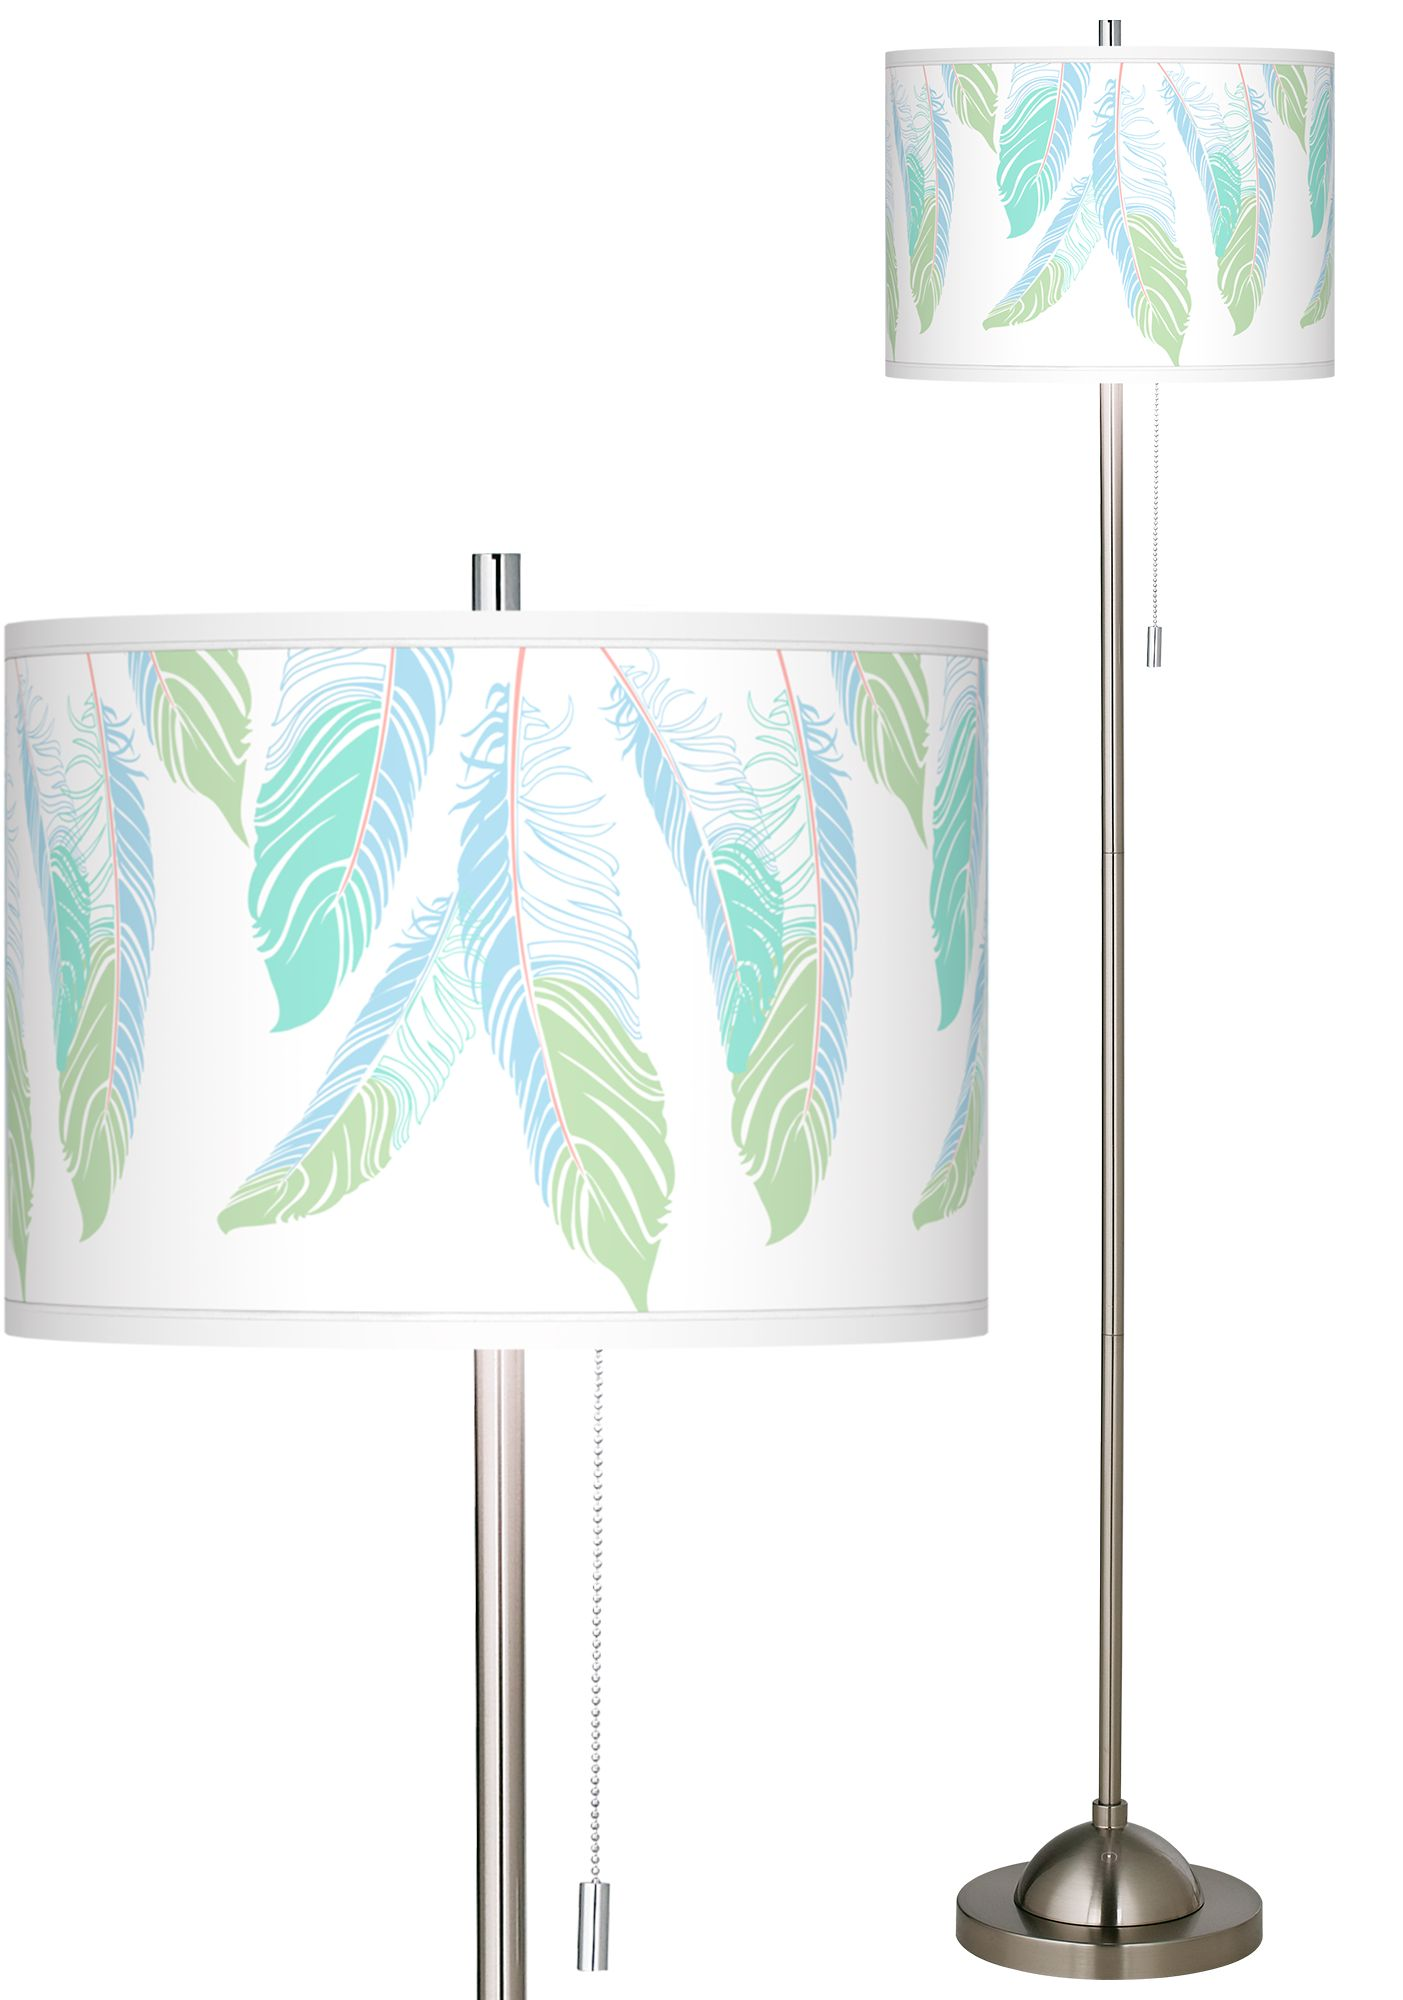 light as a feather brushed nickel pull chain floor lamp - Silver Floor Lamp